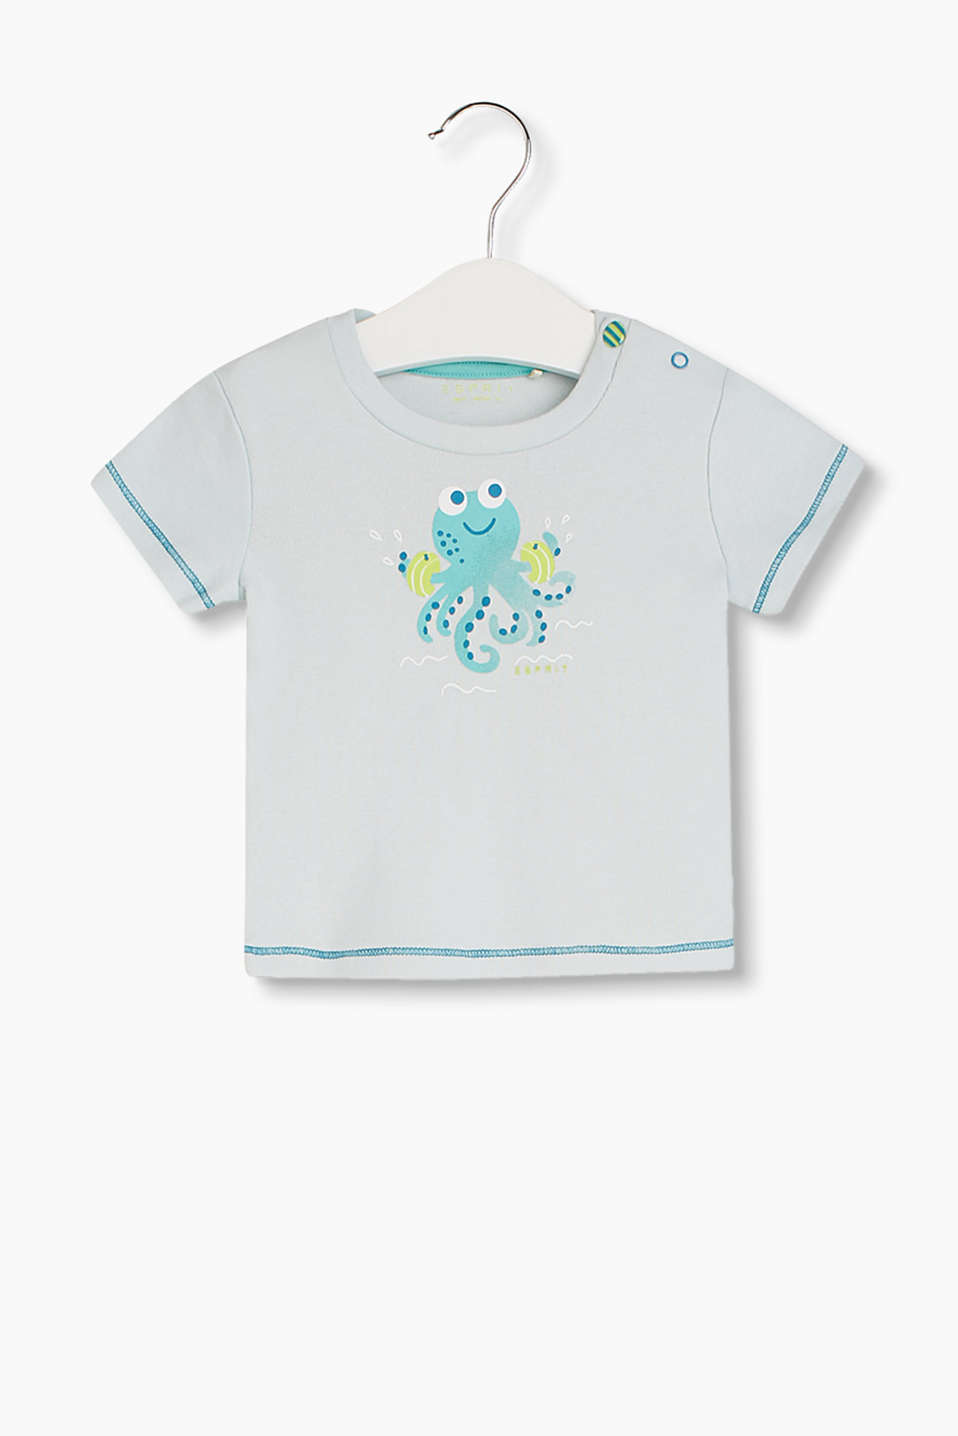 Esprit organic cotton printed t shirt at our online shop for Sustainable t shirt printing